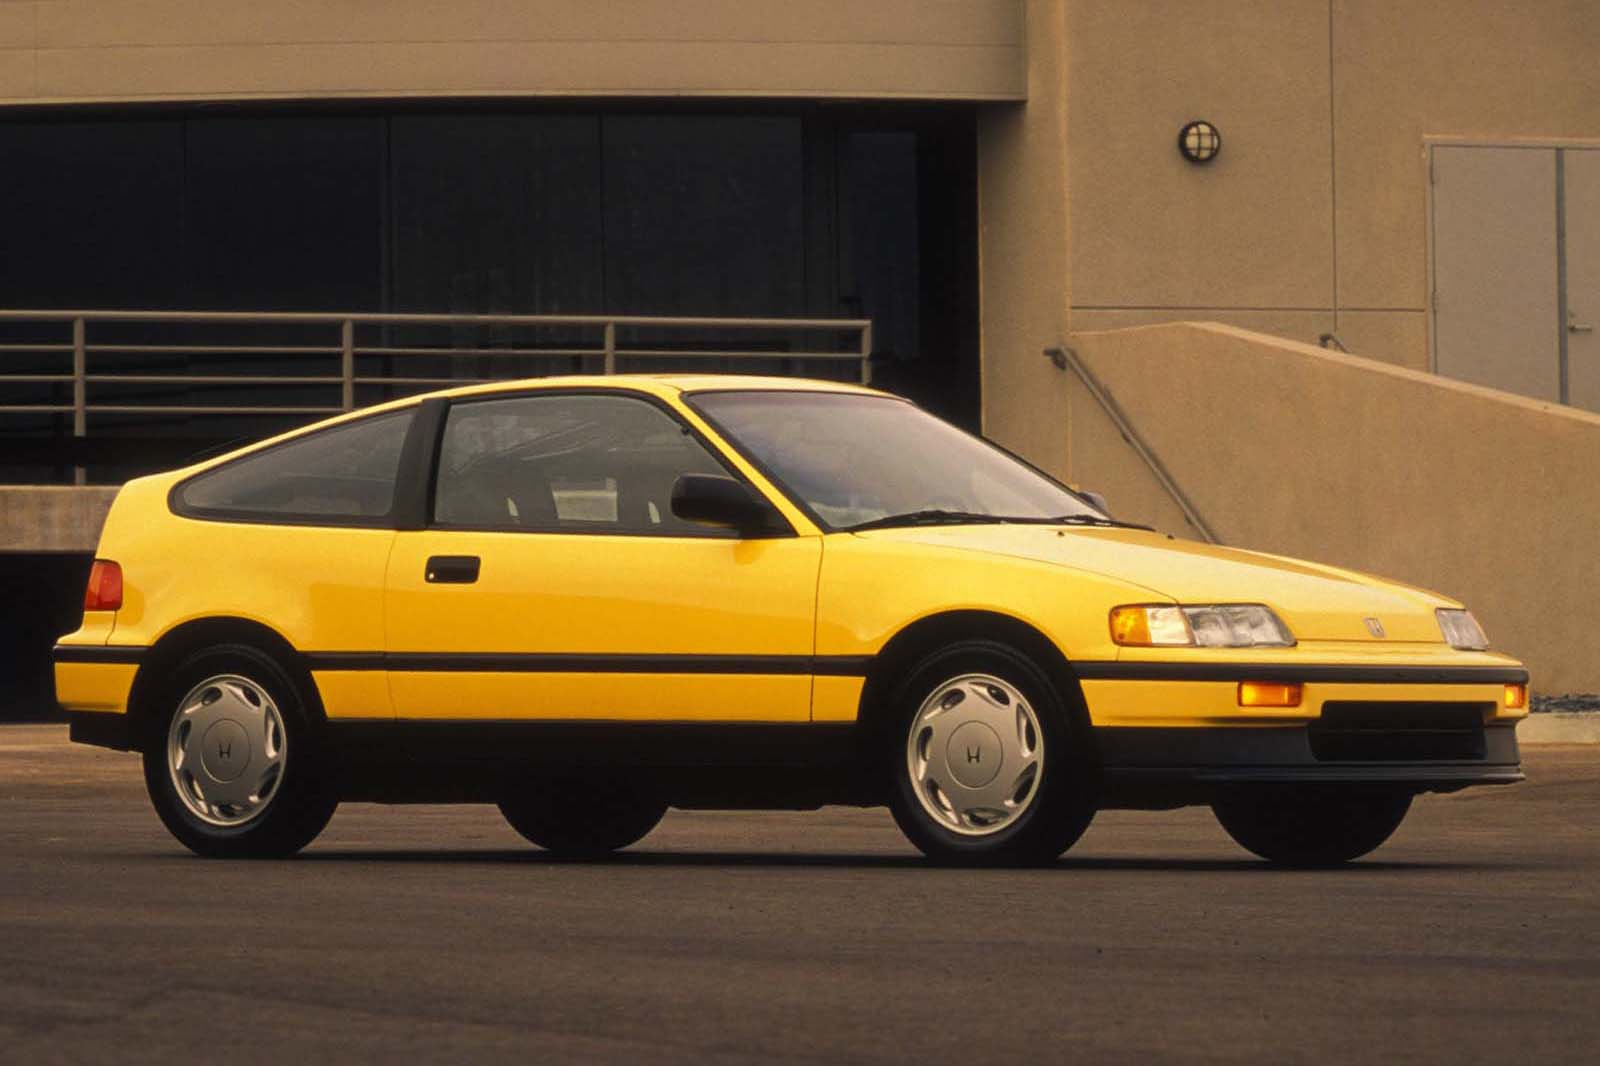 The Si model of the CRX had the same 91-hp 1.5L engine as the regular Civic, and that was plenty. HF versions prioritized fuel-sipping behaviour over all else, but still managed to be fun to chuck around. However, the Si version was where it was at.